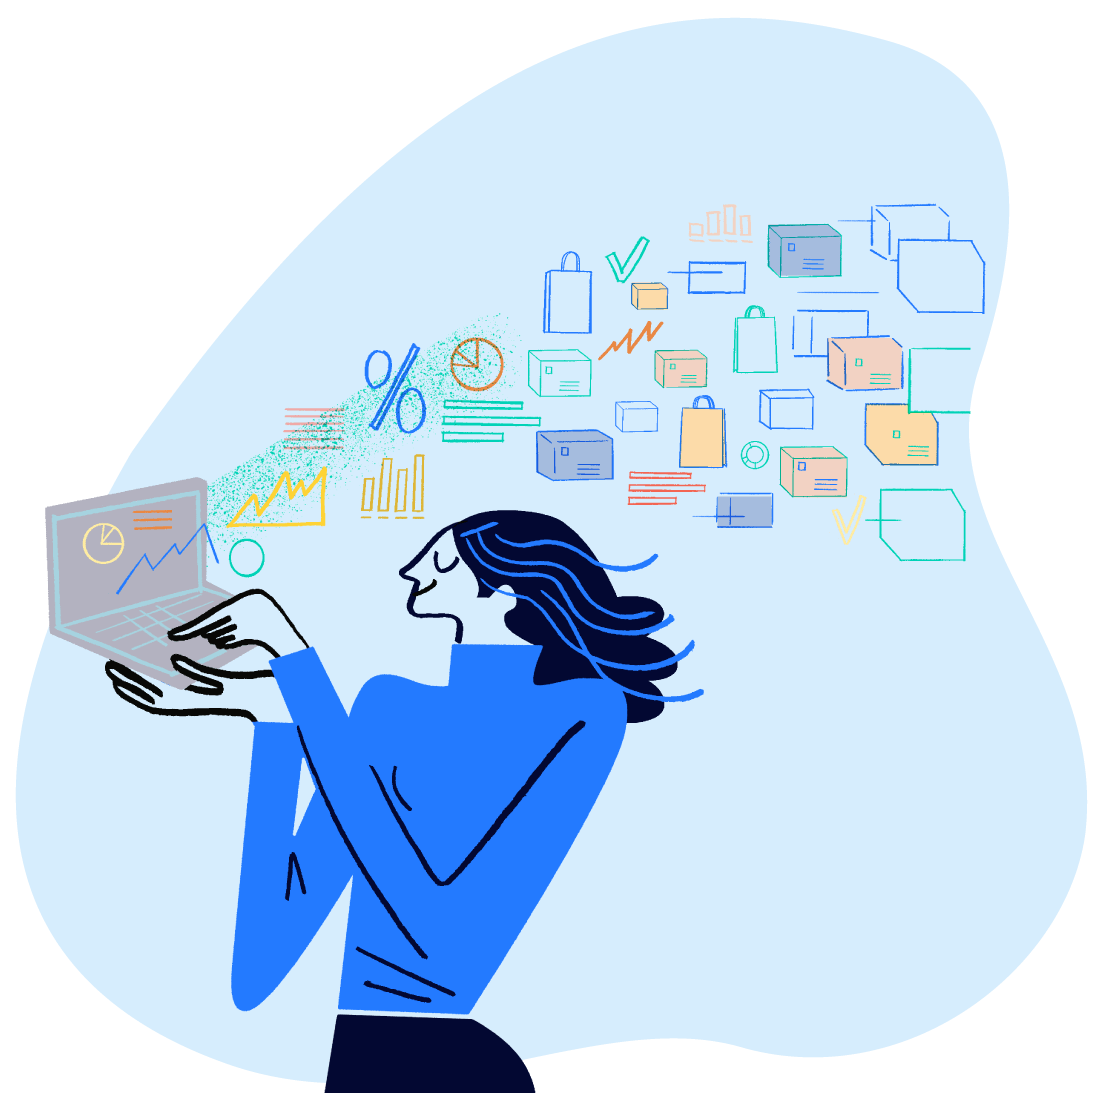 illustration of a woman holding a laptop, with a stream of data, charts, and product purchases